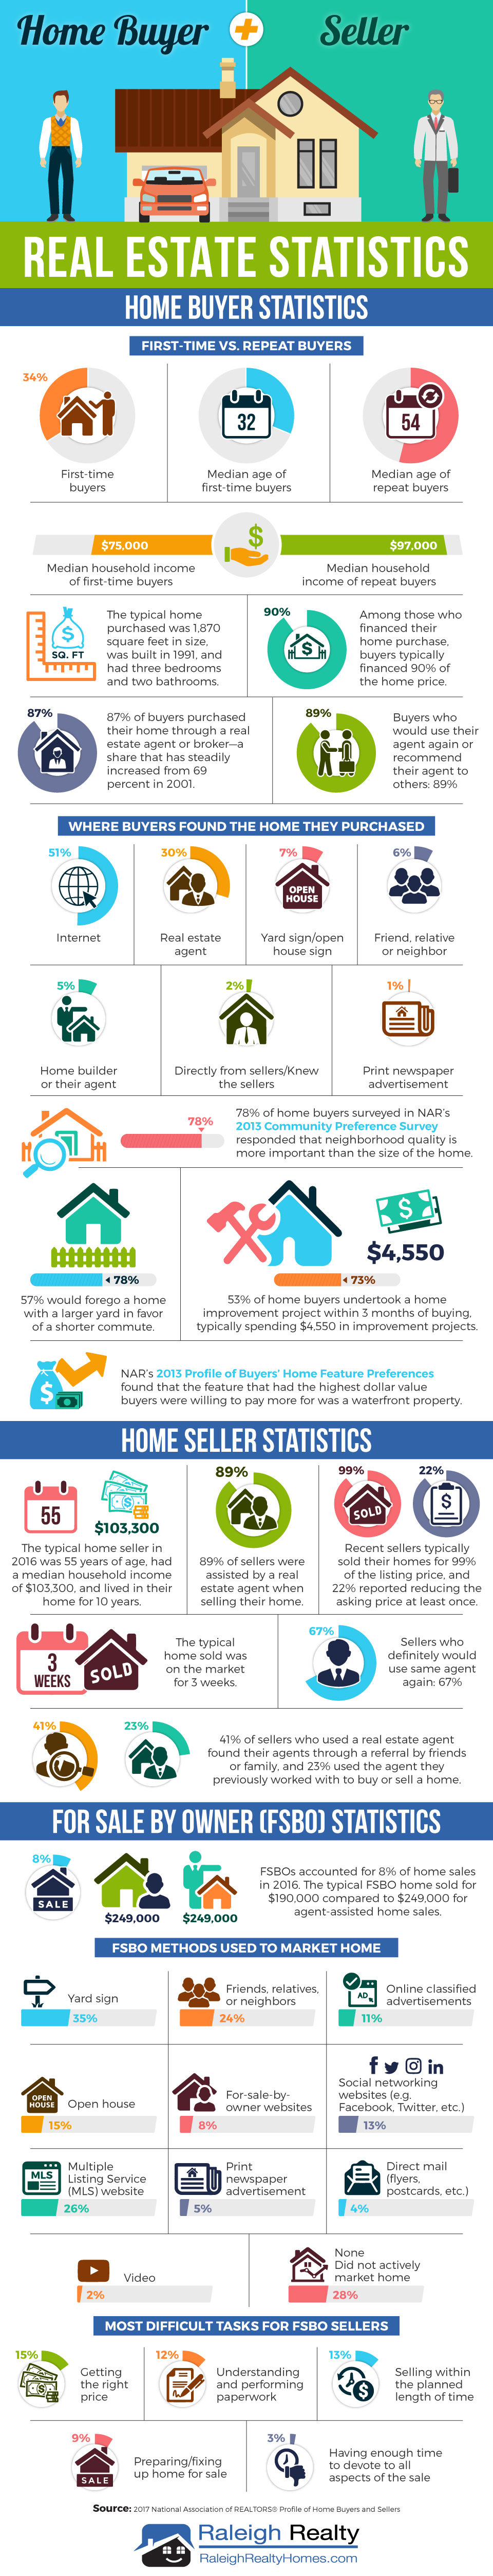 Real Estate Statistics for Home Buyers and Sellers